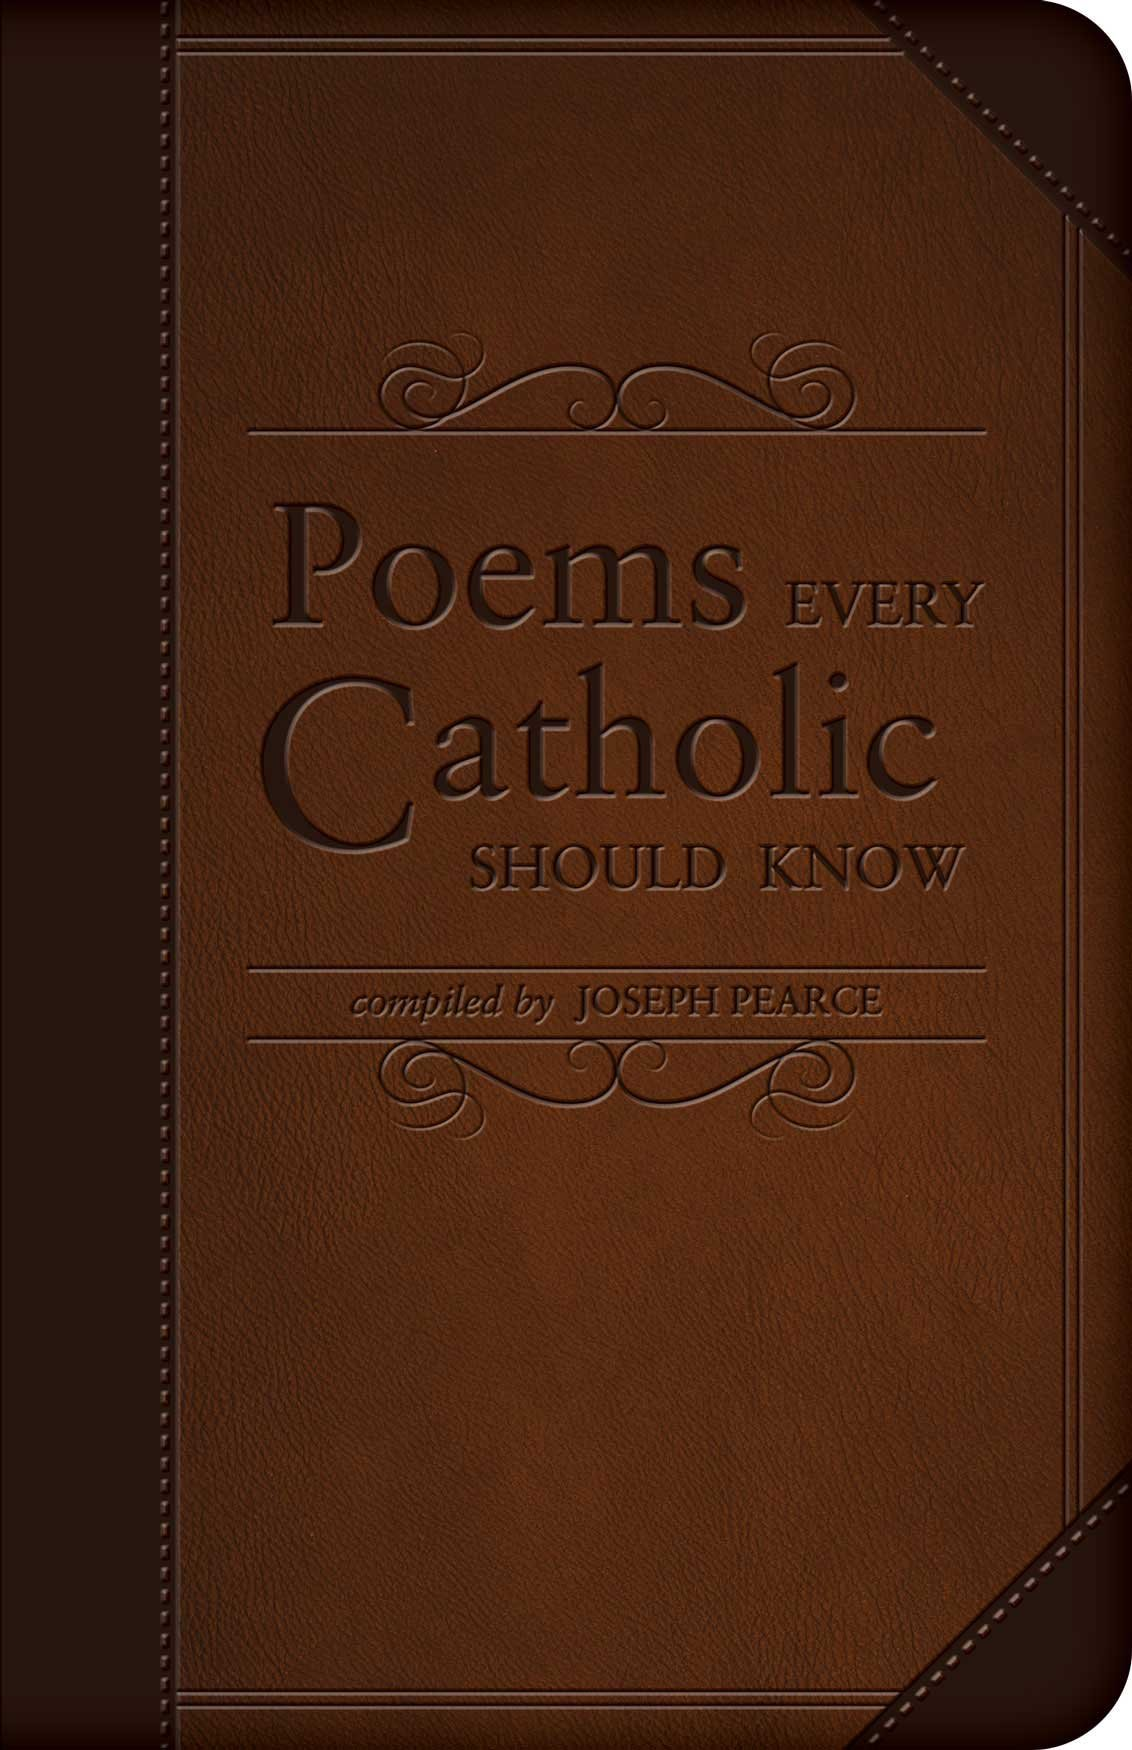 POEMS EVERY CATH SHOULD KNOW